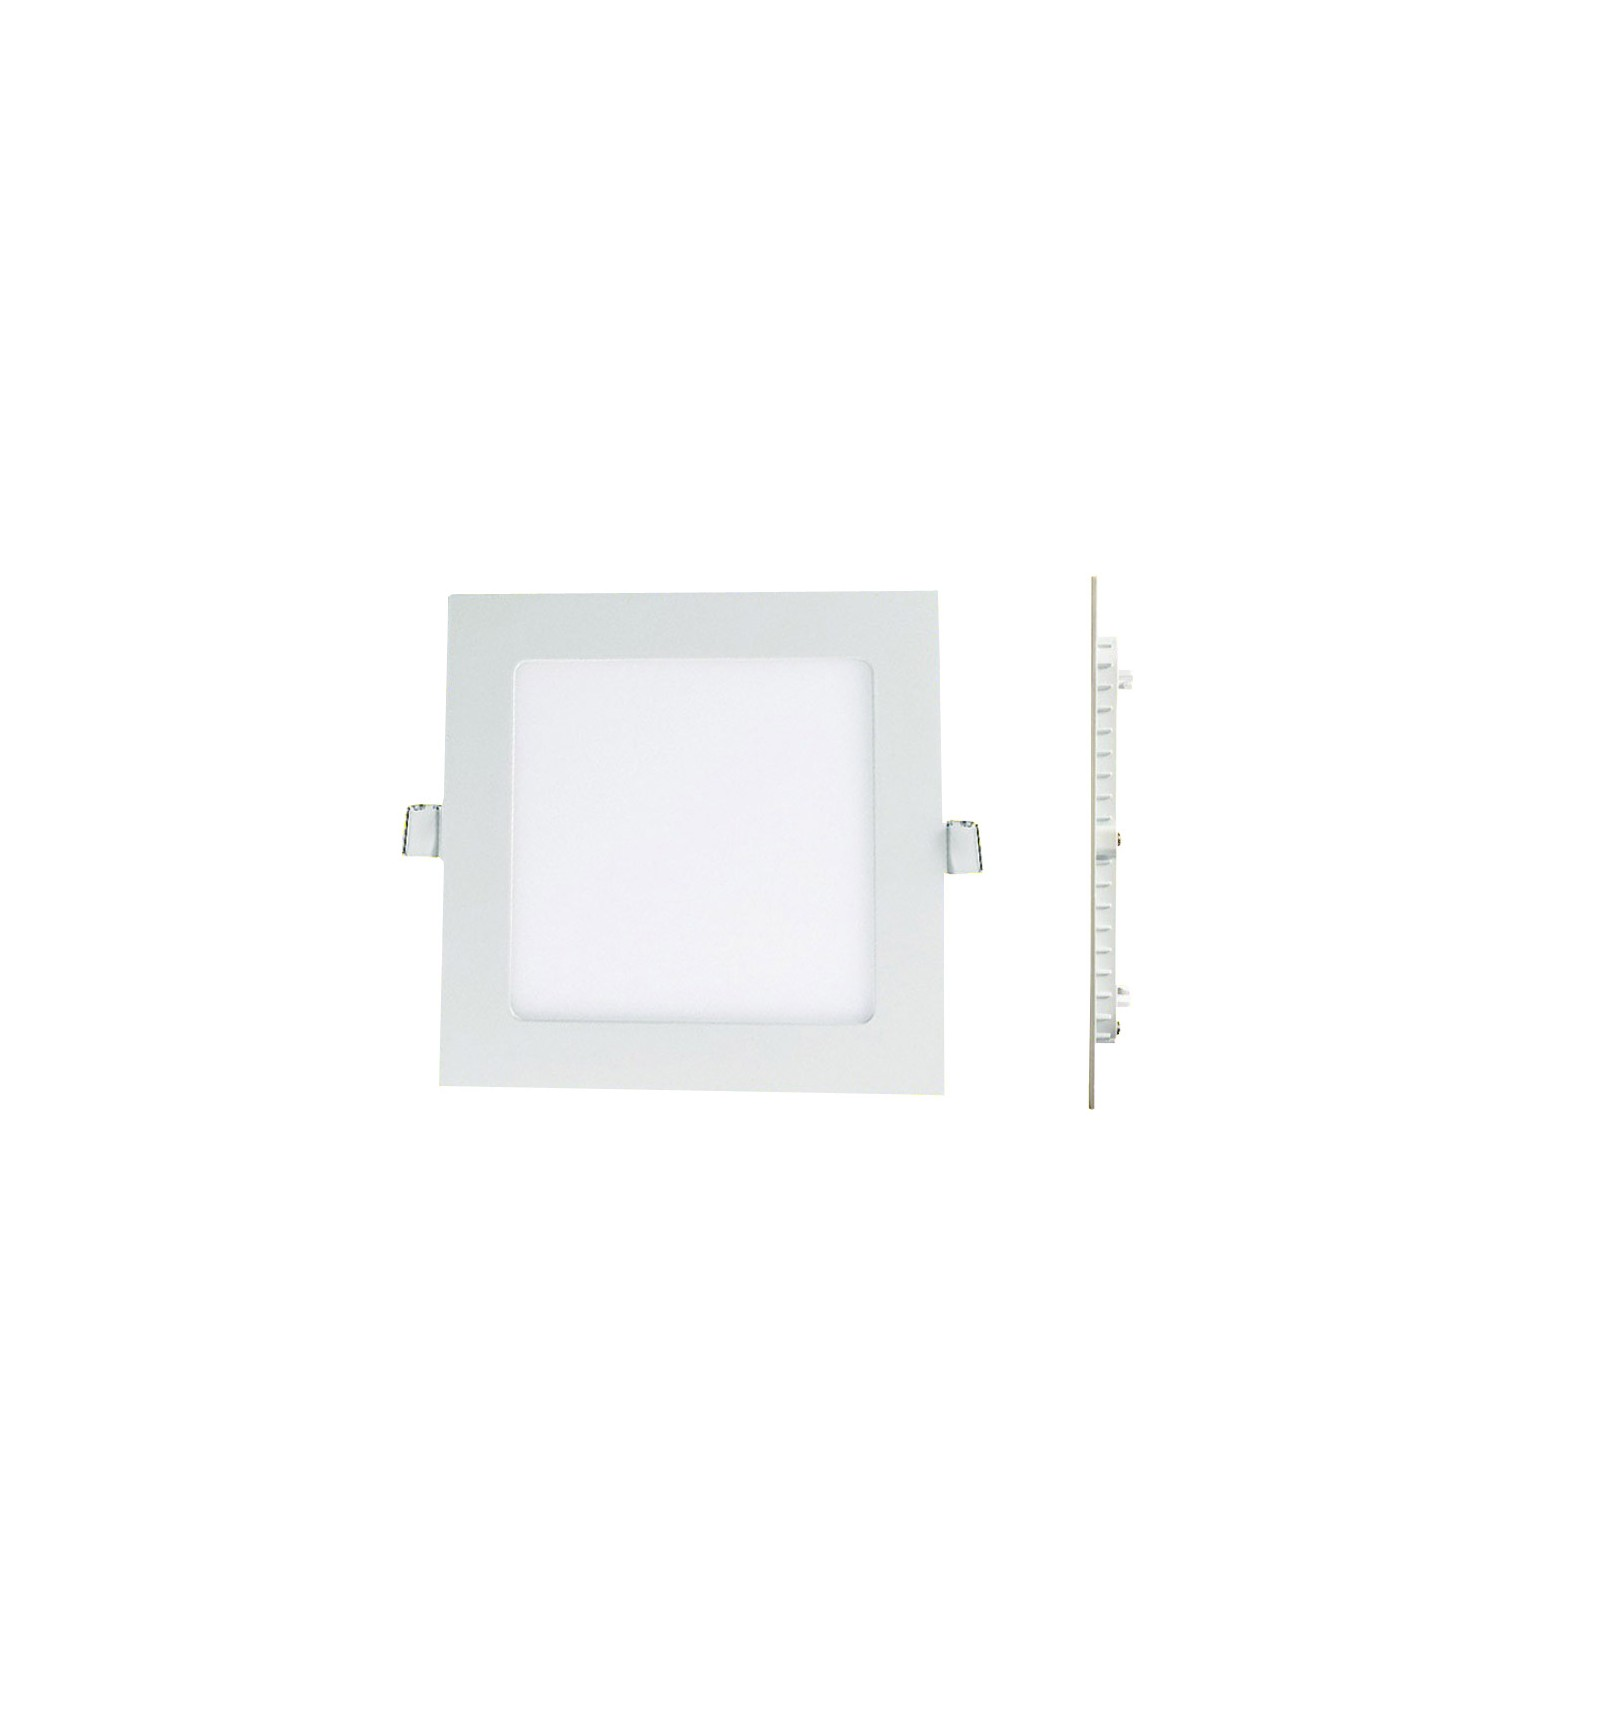 spot encastrable led carre downlight panel extra plat 18w blanc chaud. Black Bedroom Furniture Sets. Home Design Ideas